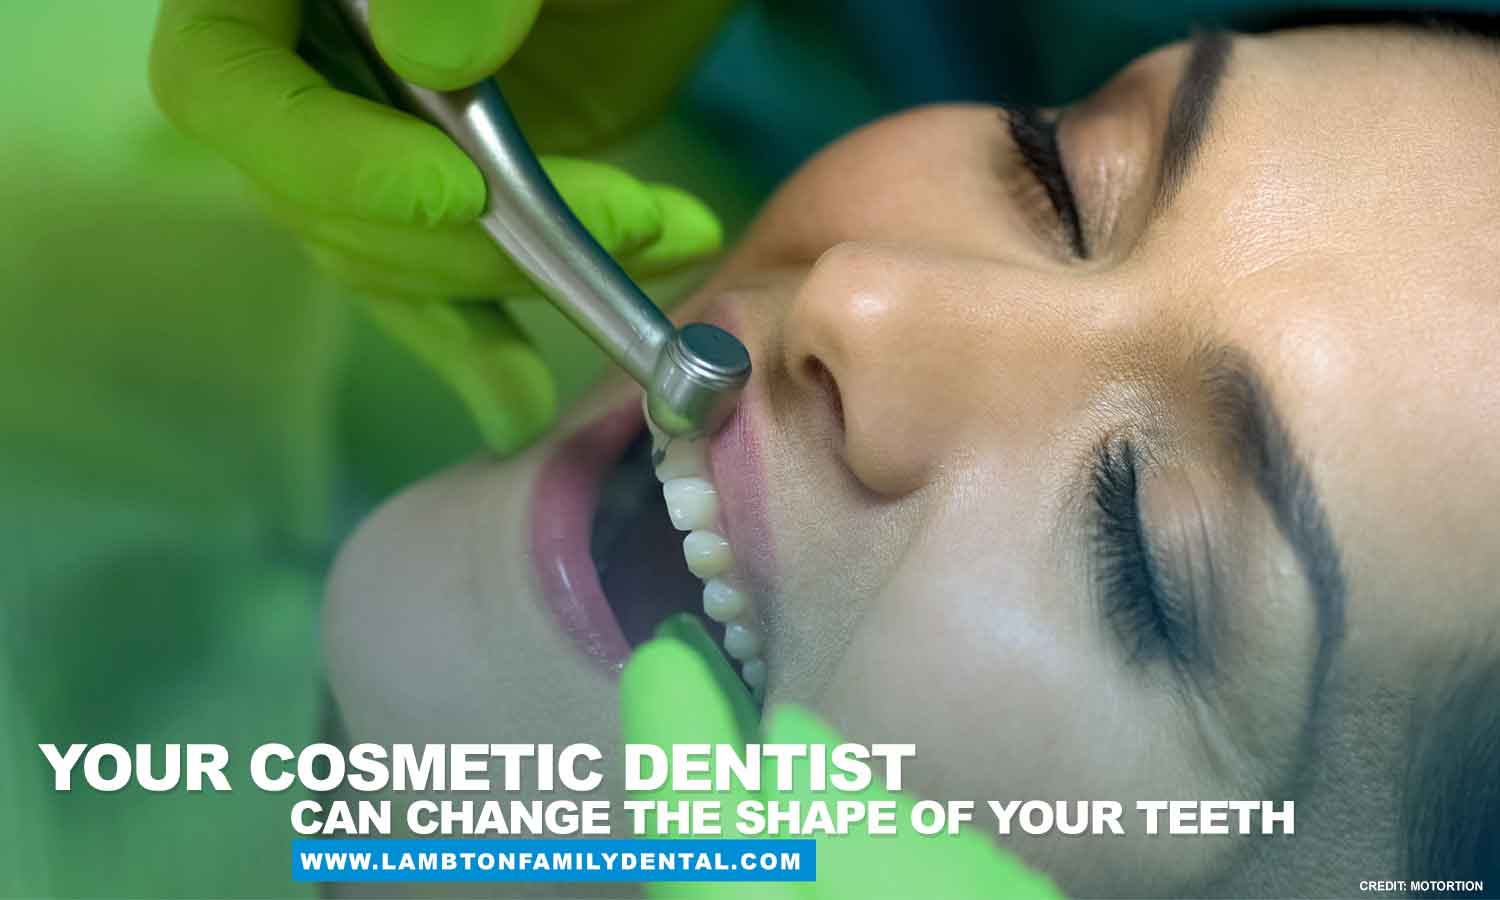 cosmetic dentist can change the shape of your teeth